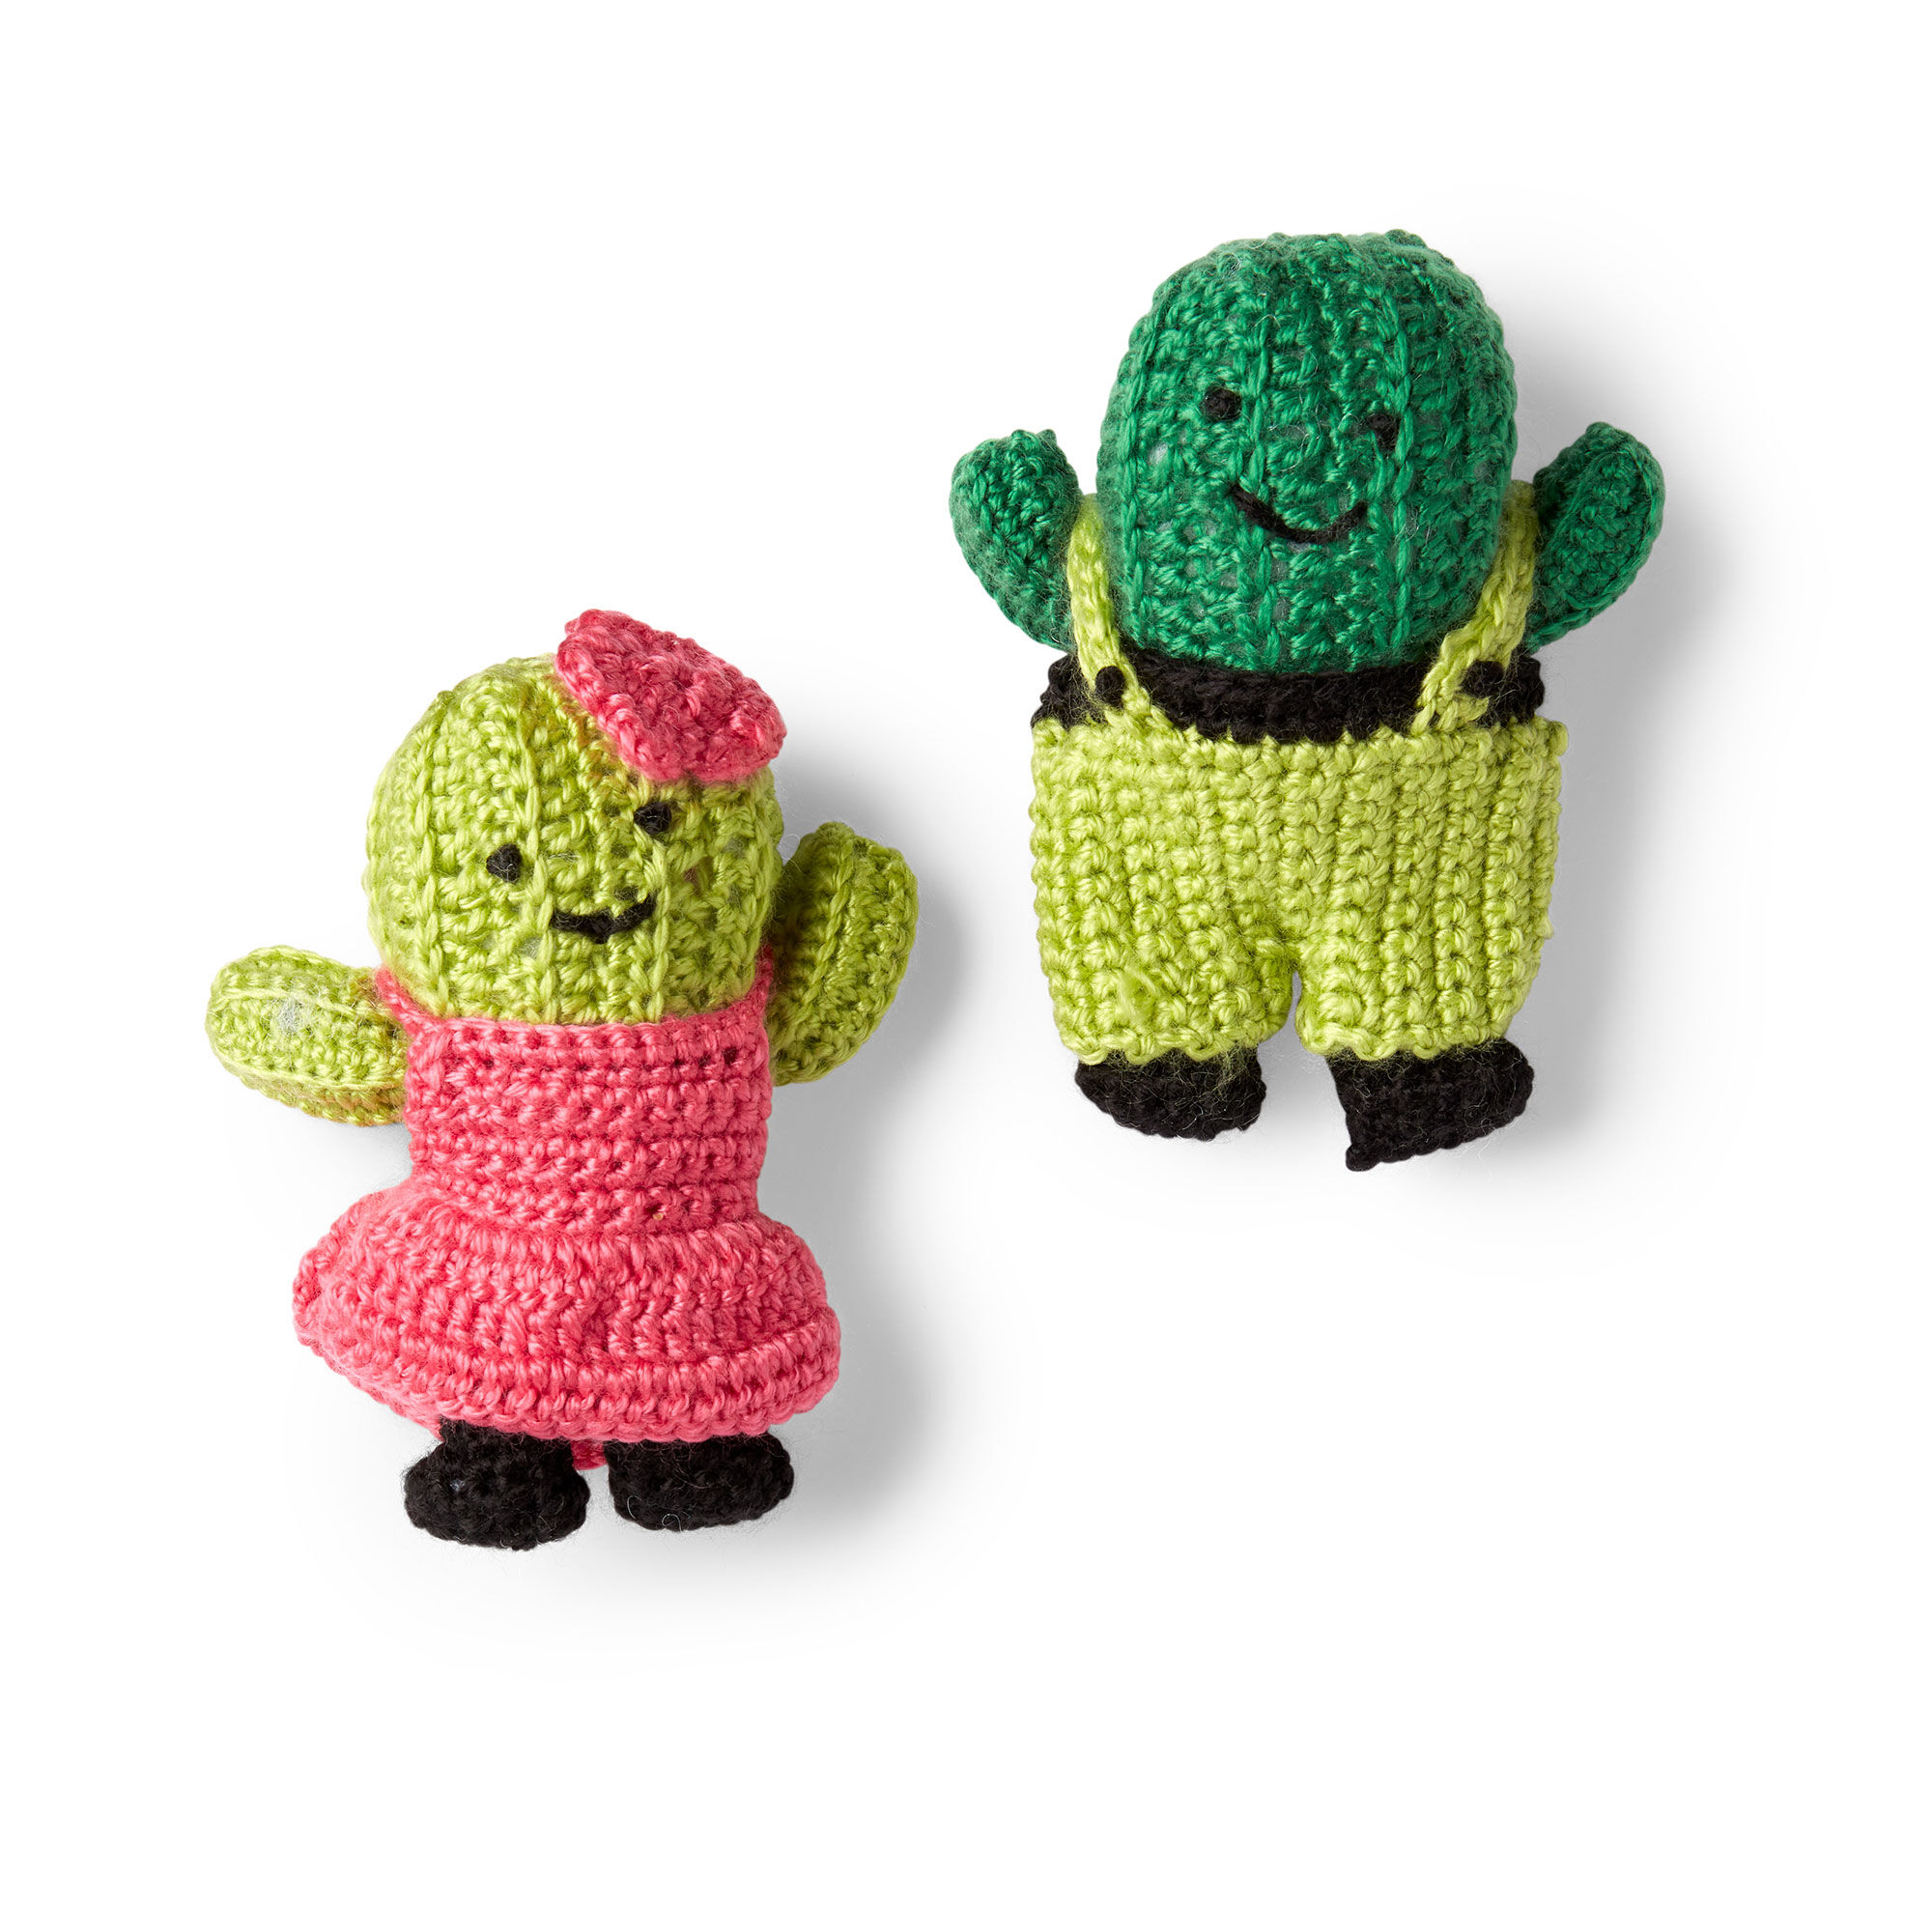 Crochet Cactus Patterns Best Ideas Video Instructions | 2000x2000